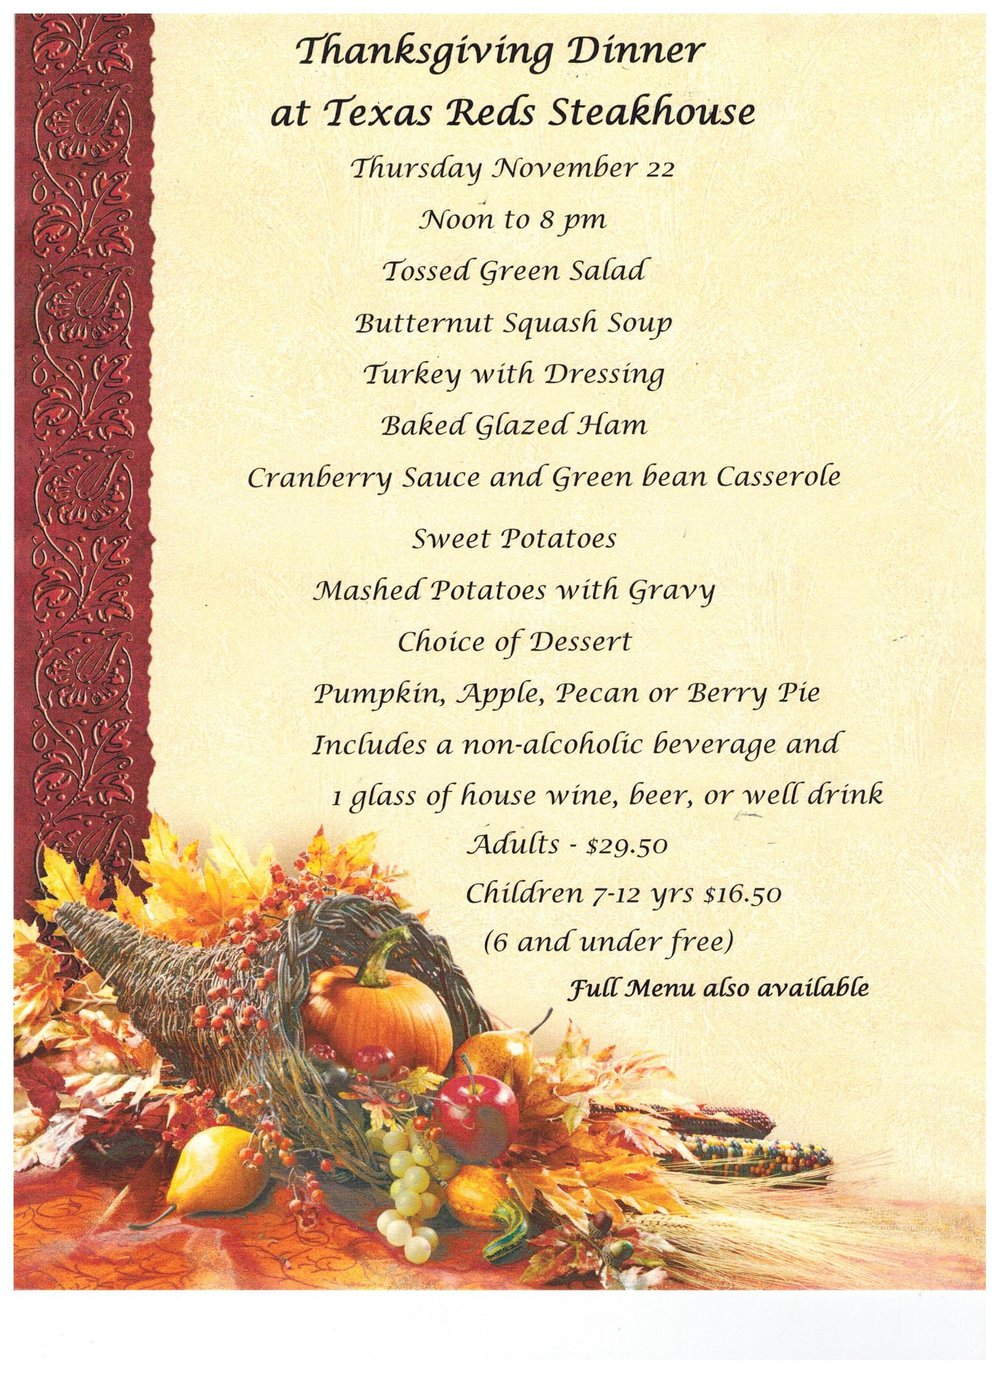 Thanksgiving Menu 2018.jpg